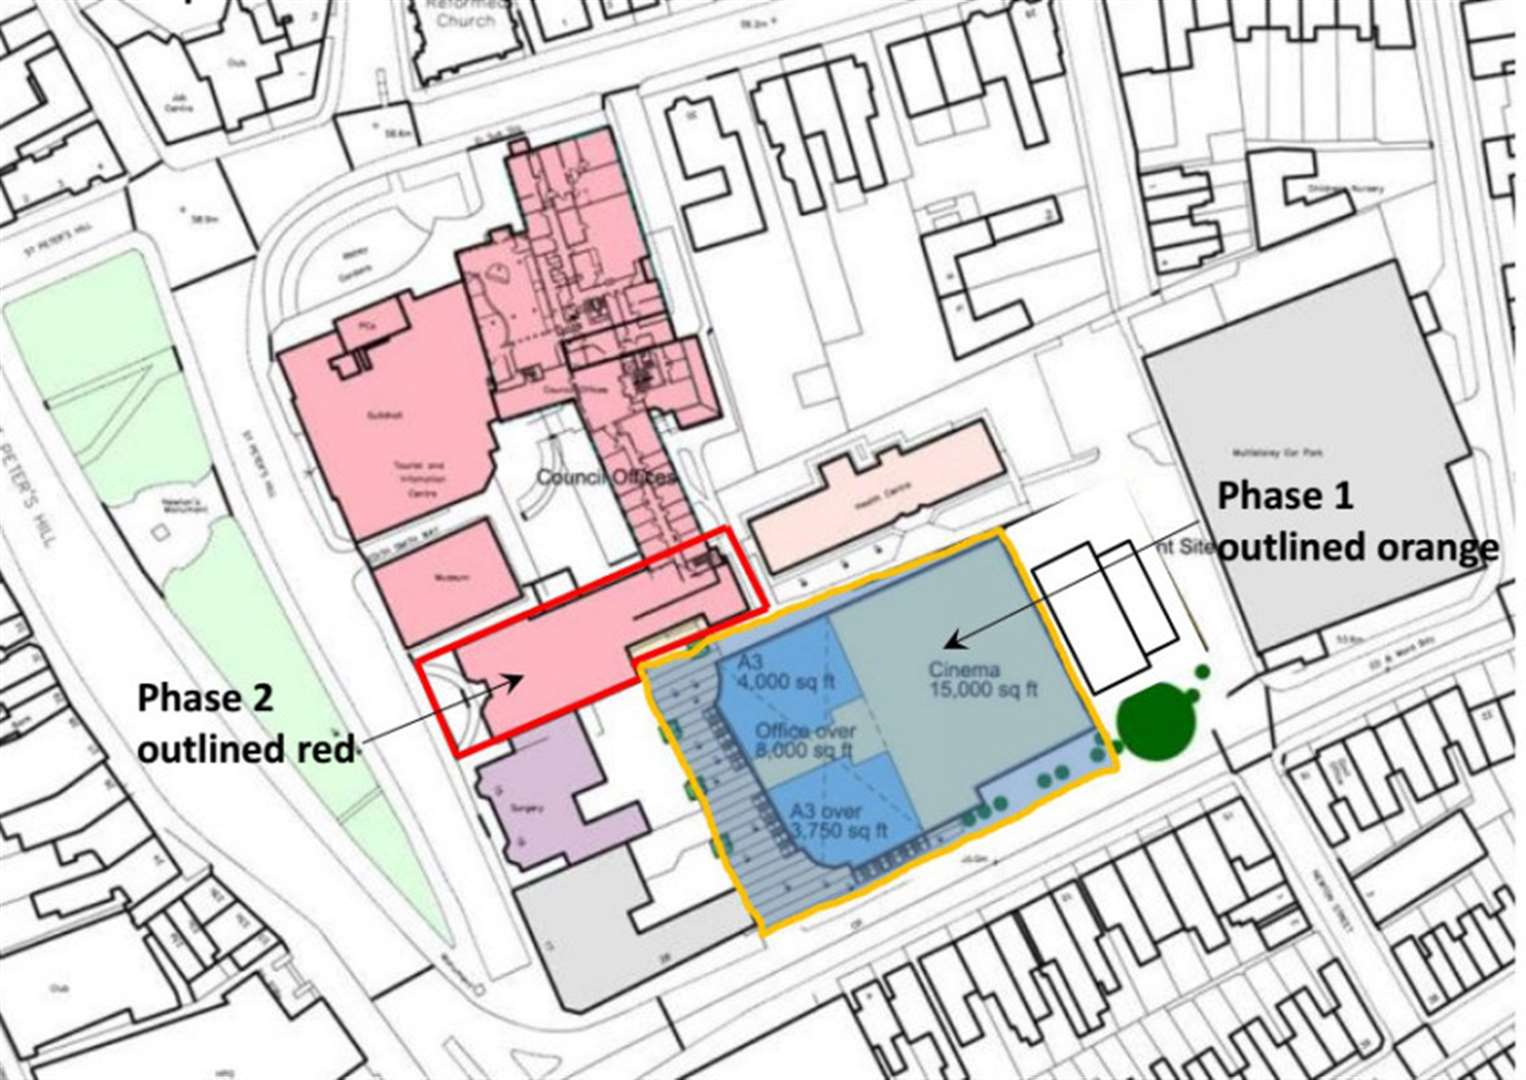 Cinema complex plan for Grantham is now more ambitious